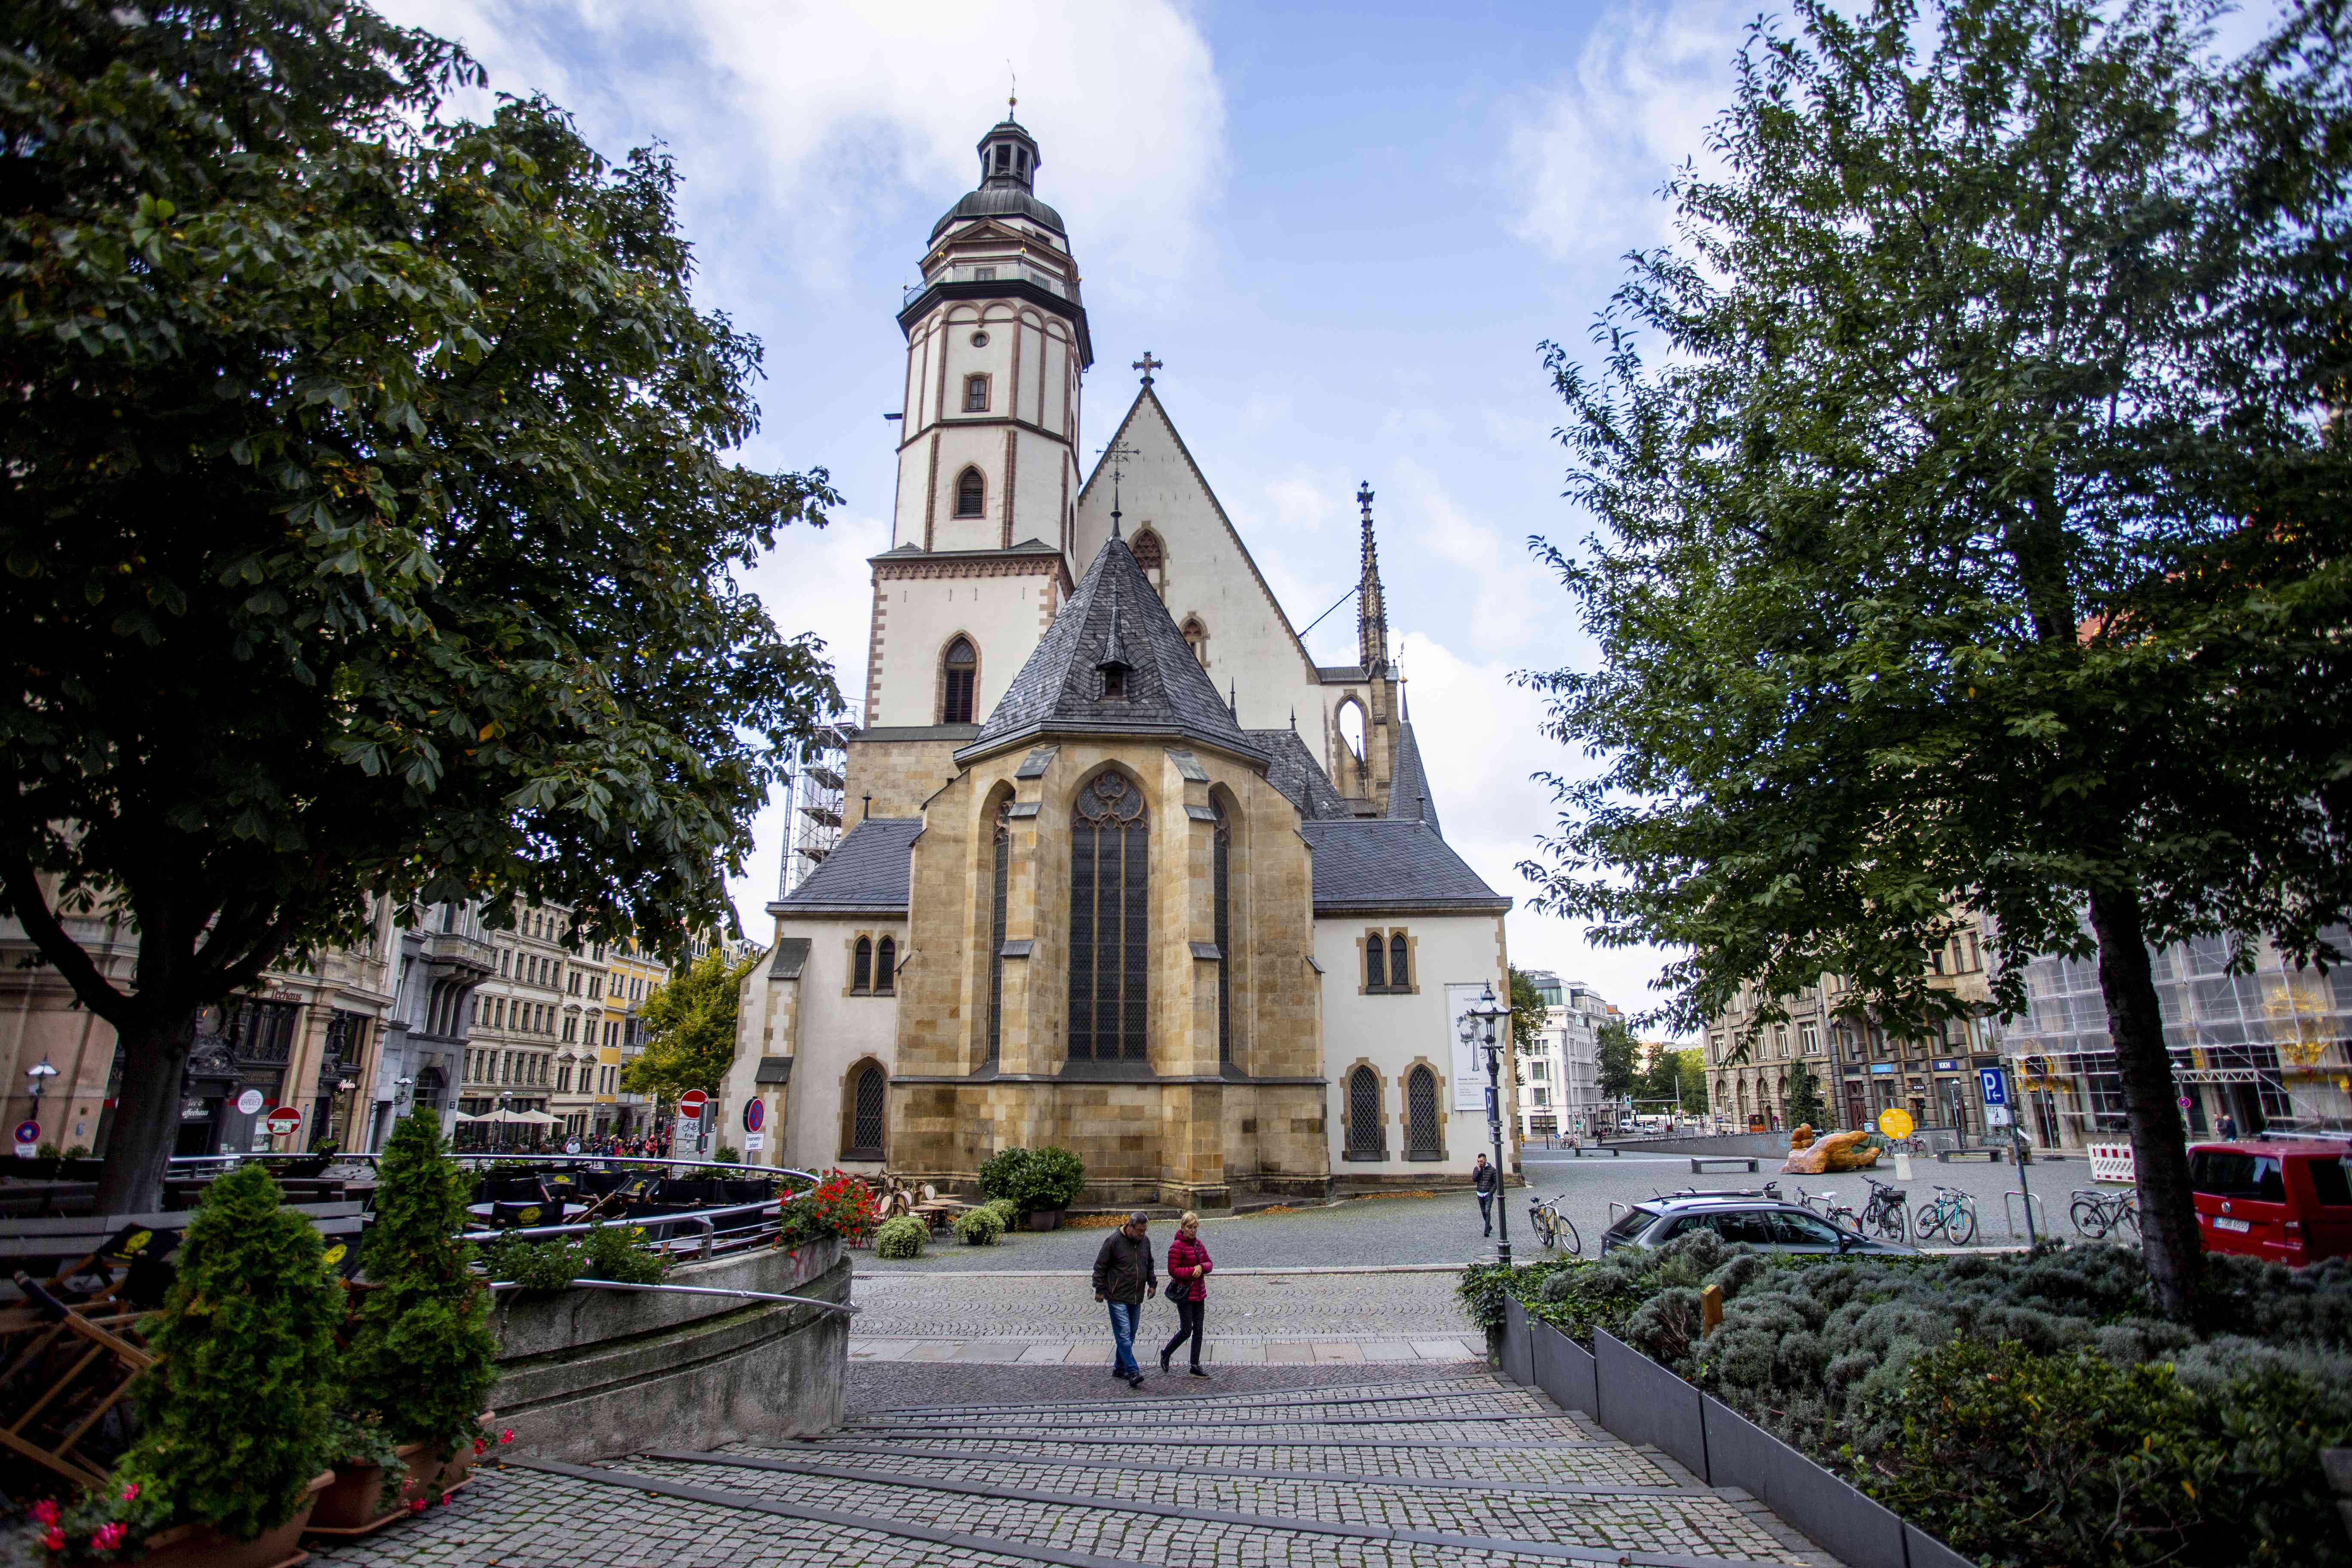 Two people walking past the front of St Thomas Church